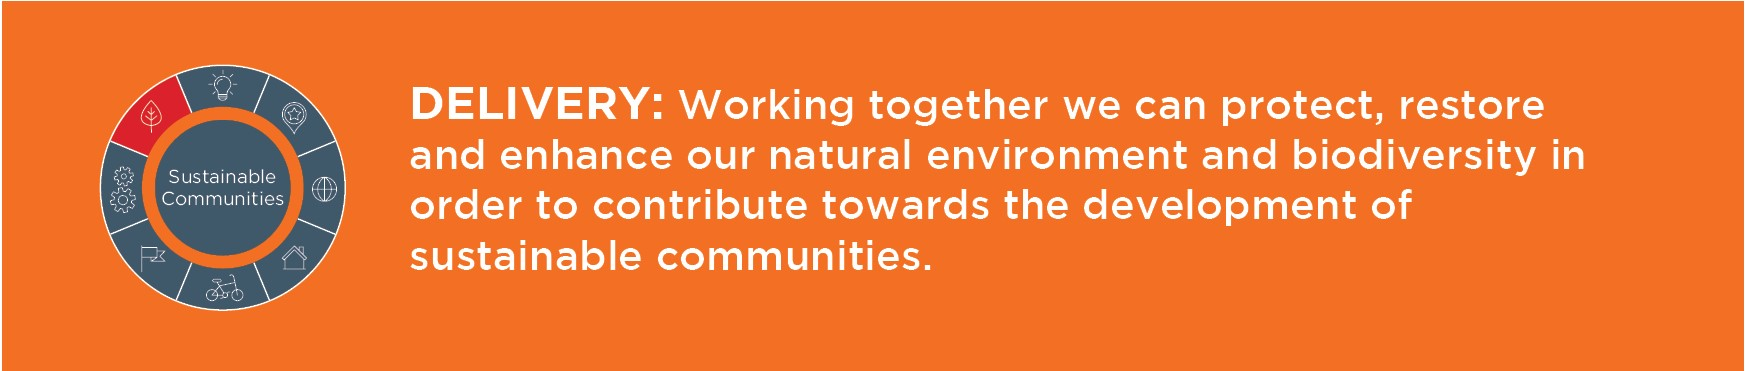 Working together we can protect, secure and enhance our natural environment and biodiversity in order to contribute towards the development of sustainable communities.